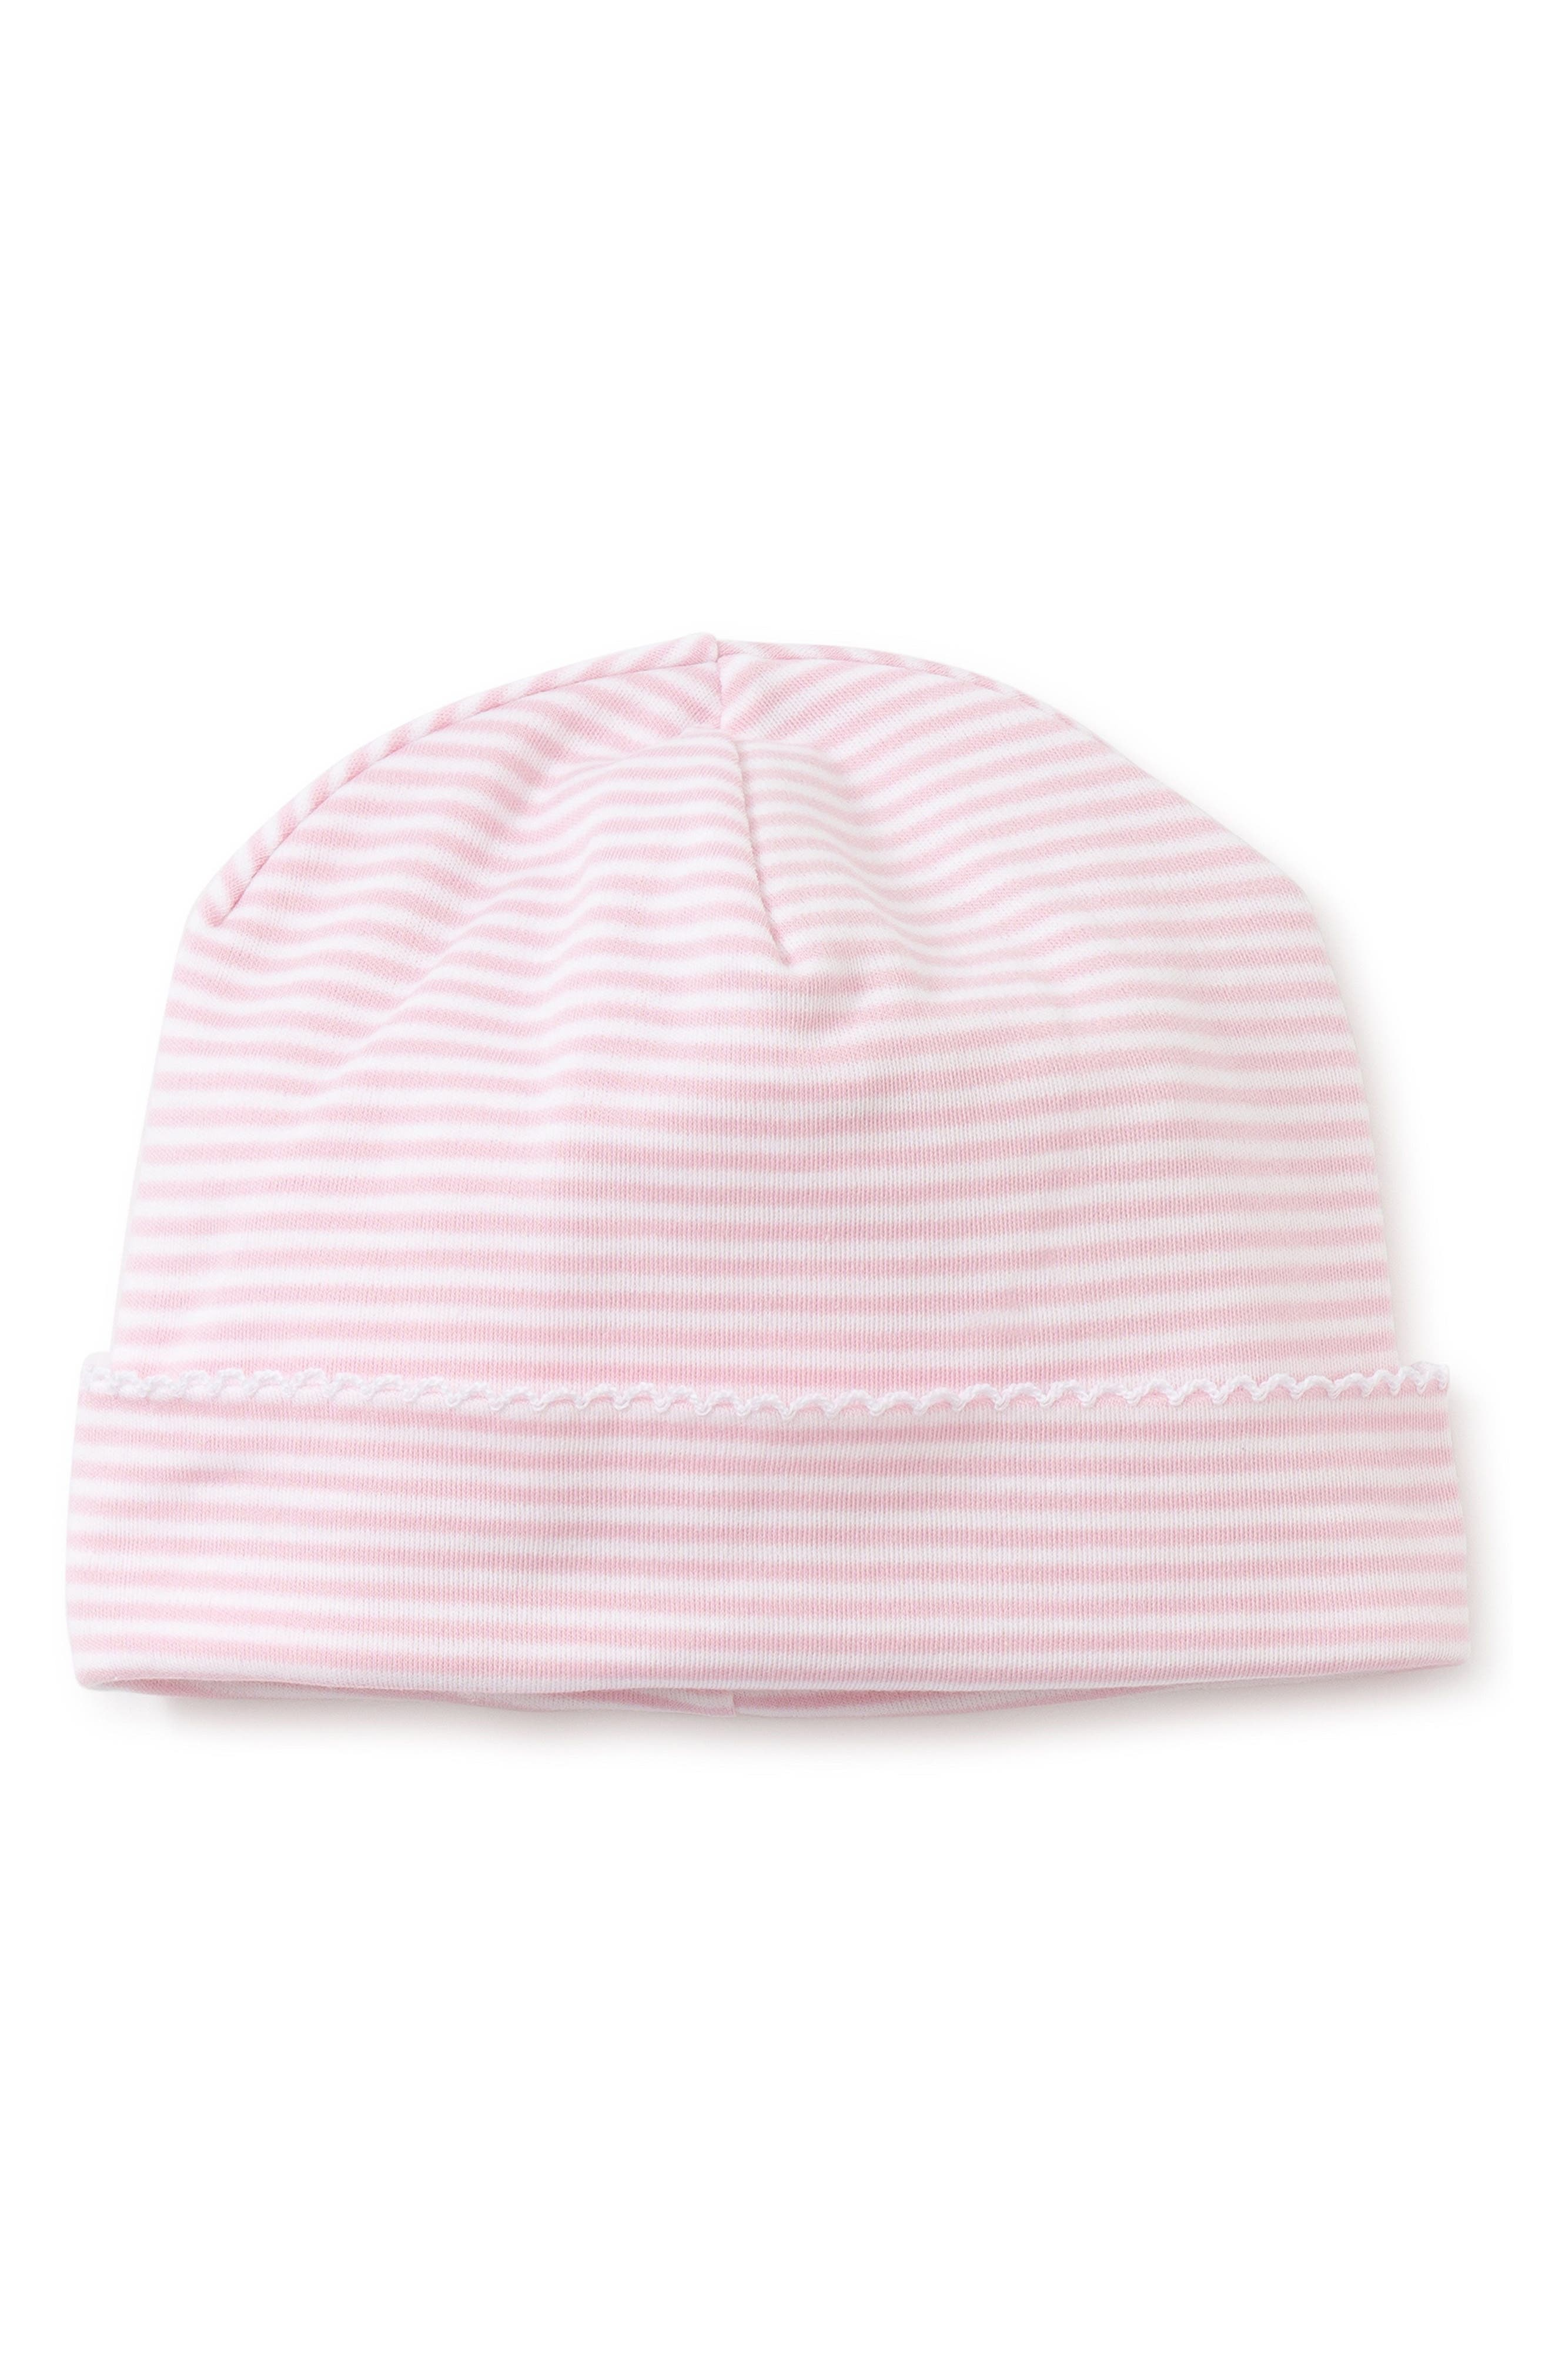 Simple Stripes Beanie Hat,                             Main thumbnail 1, color,                             PINK